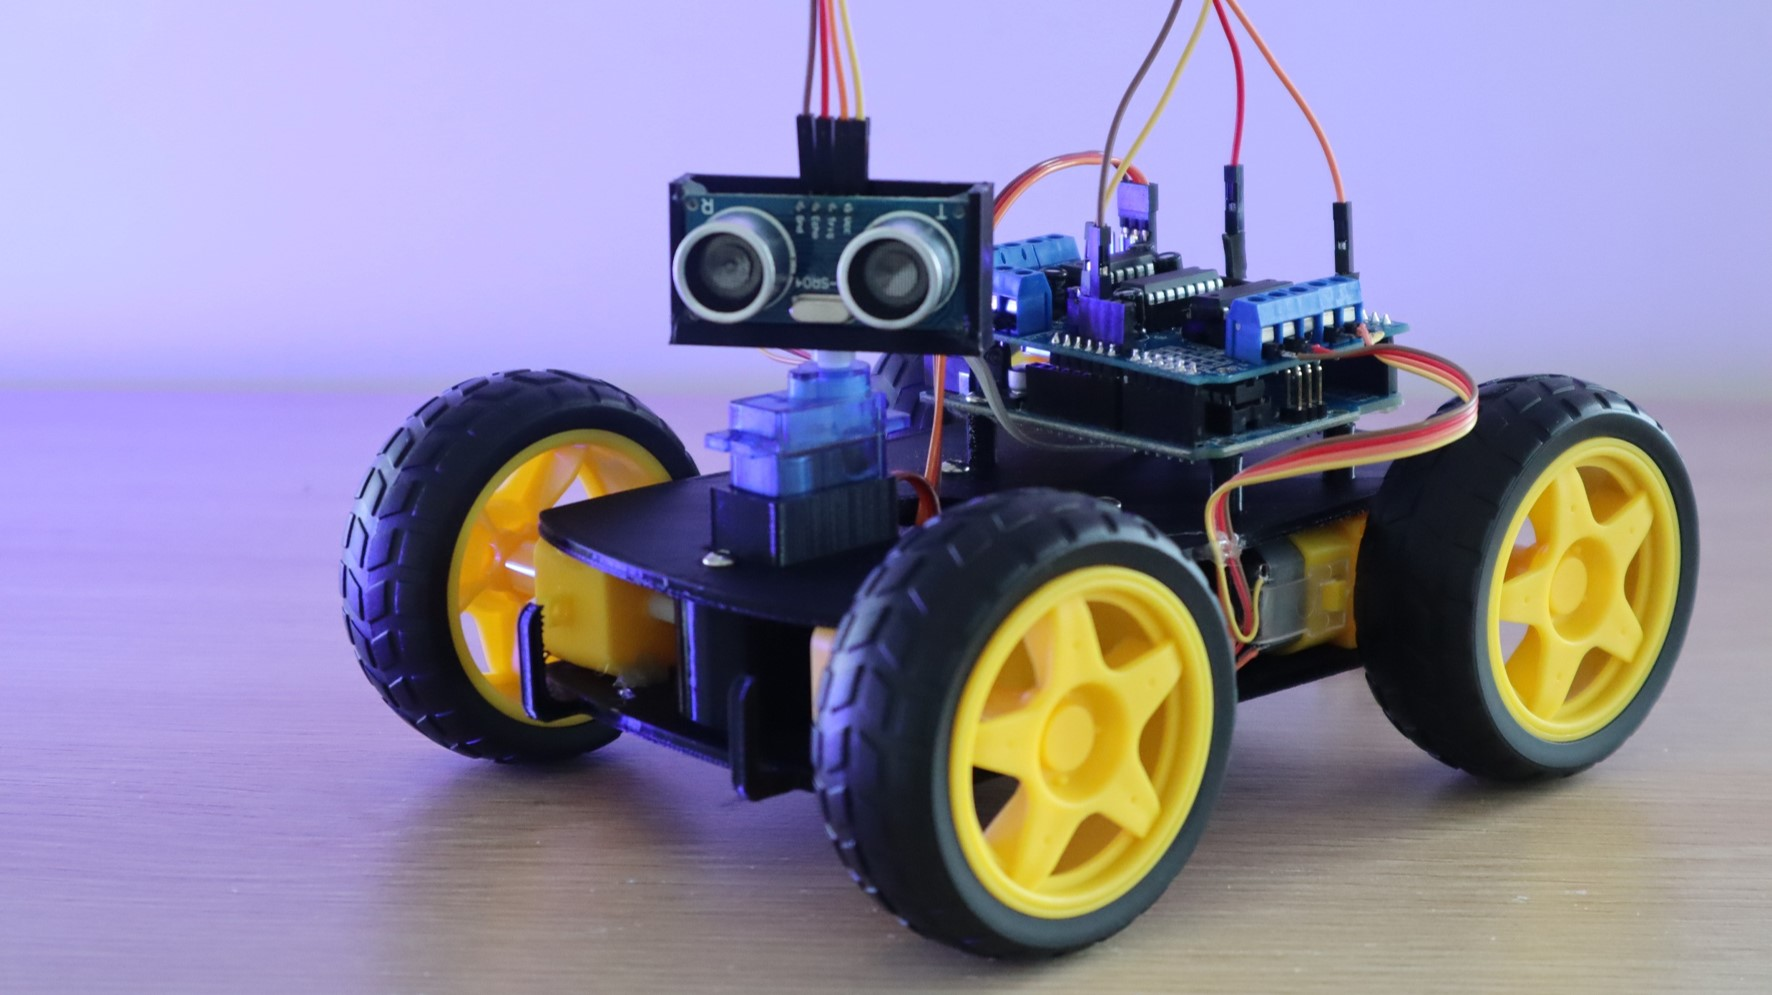 Obstacle Avoiding Robot Car Using An Arduino Uno